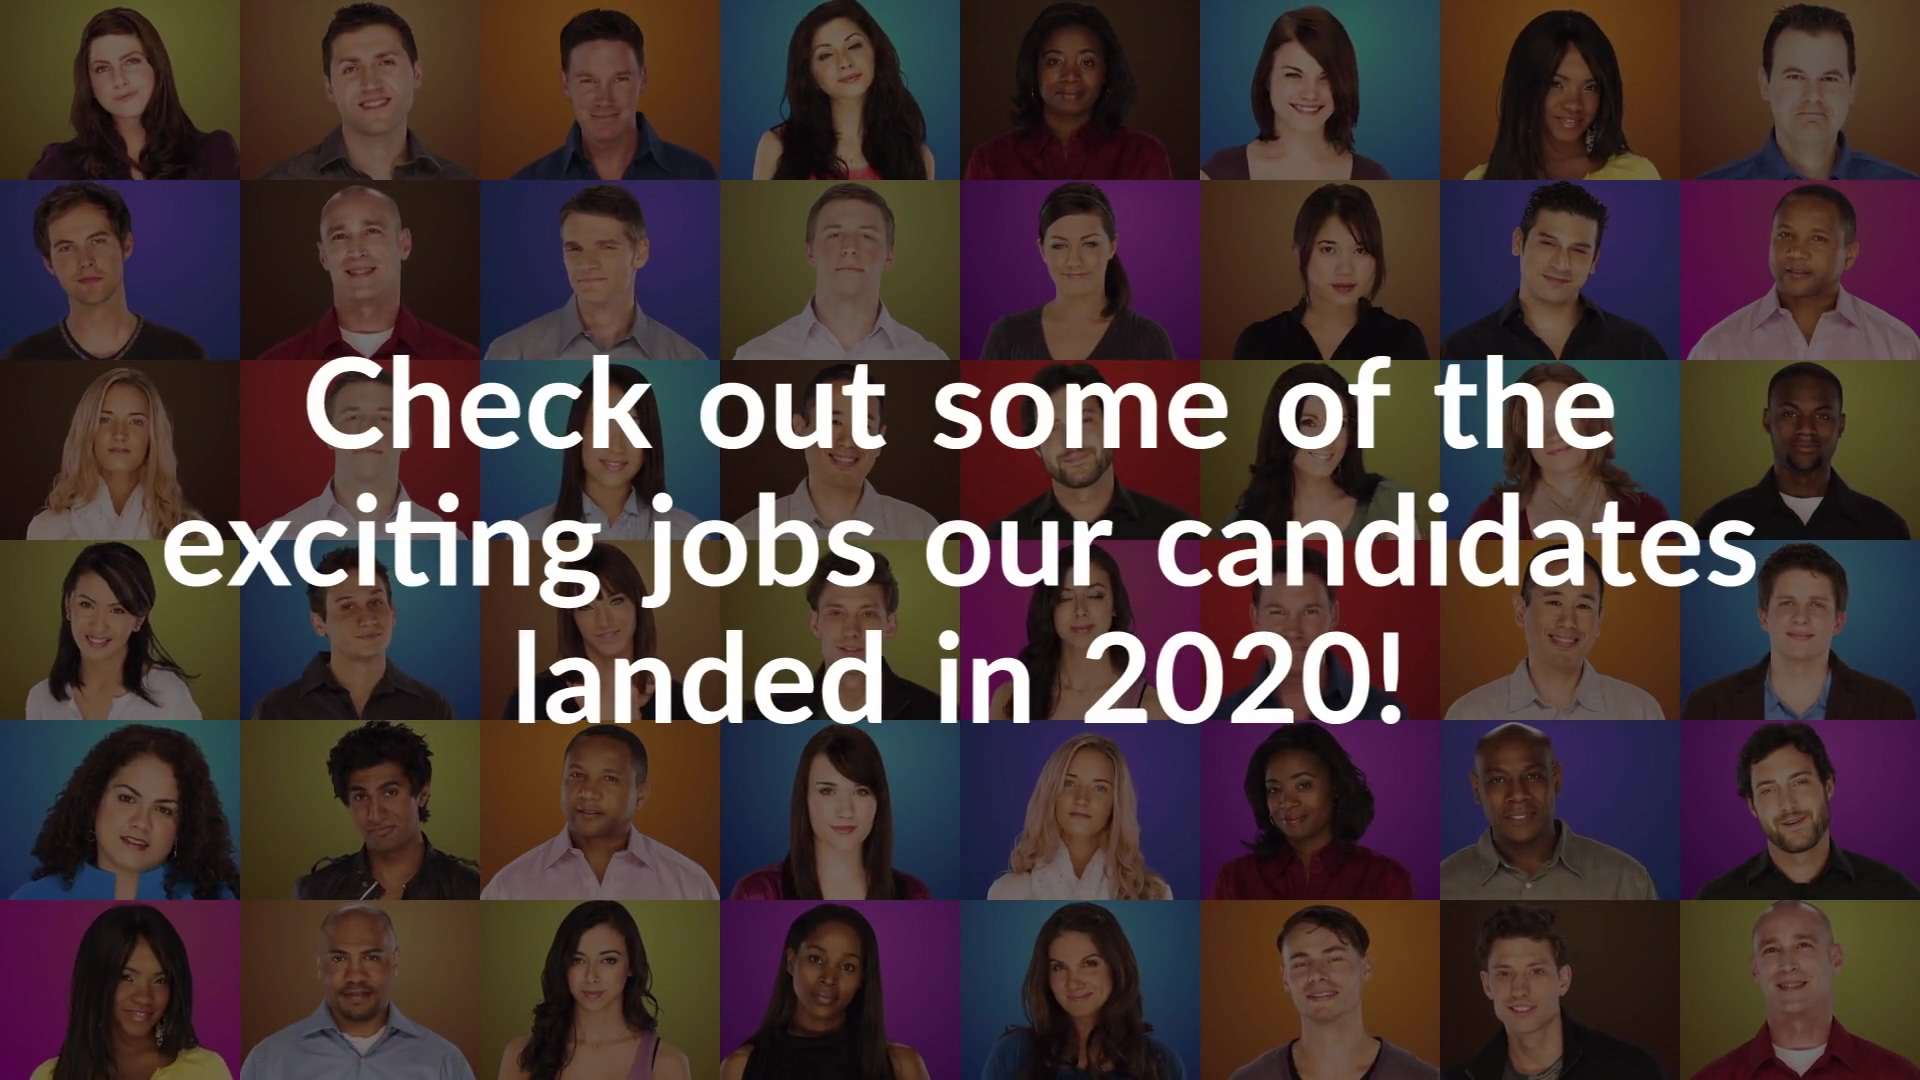 2020-placed-jobs